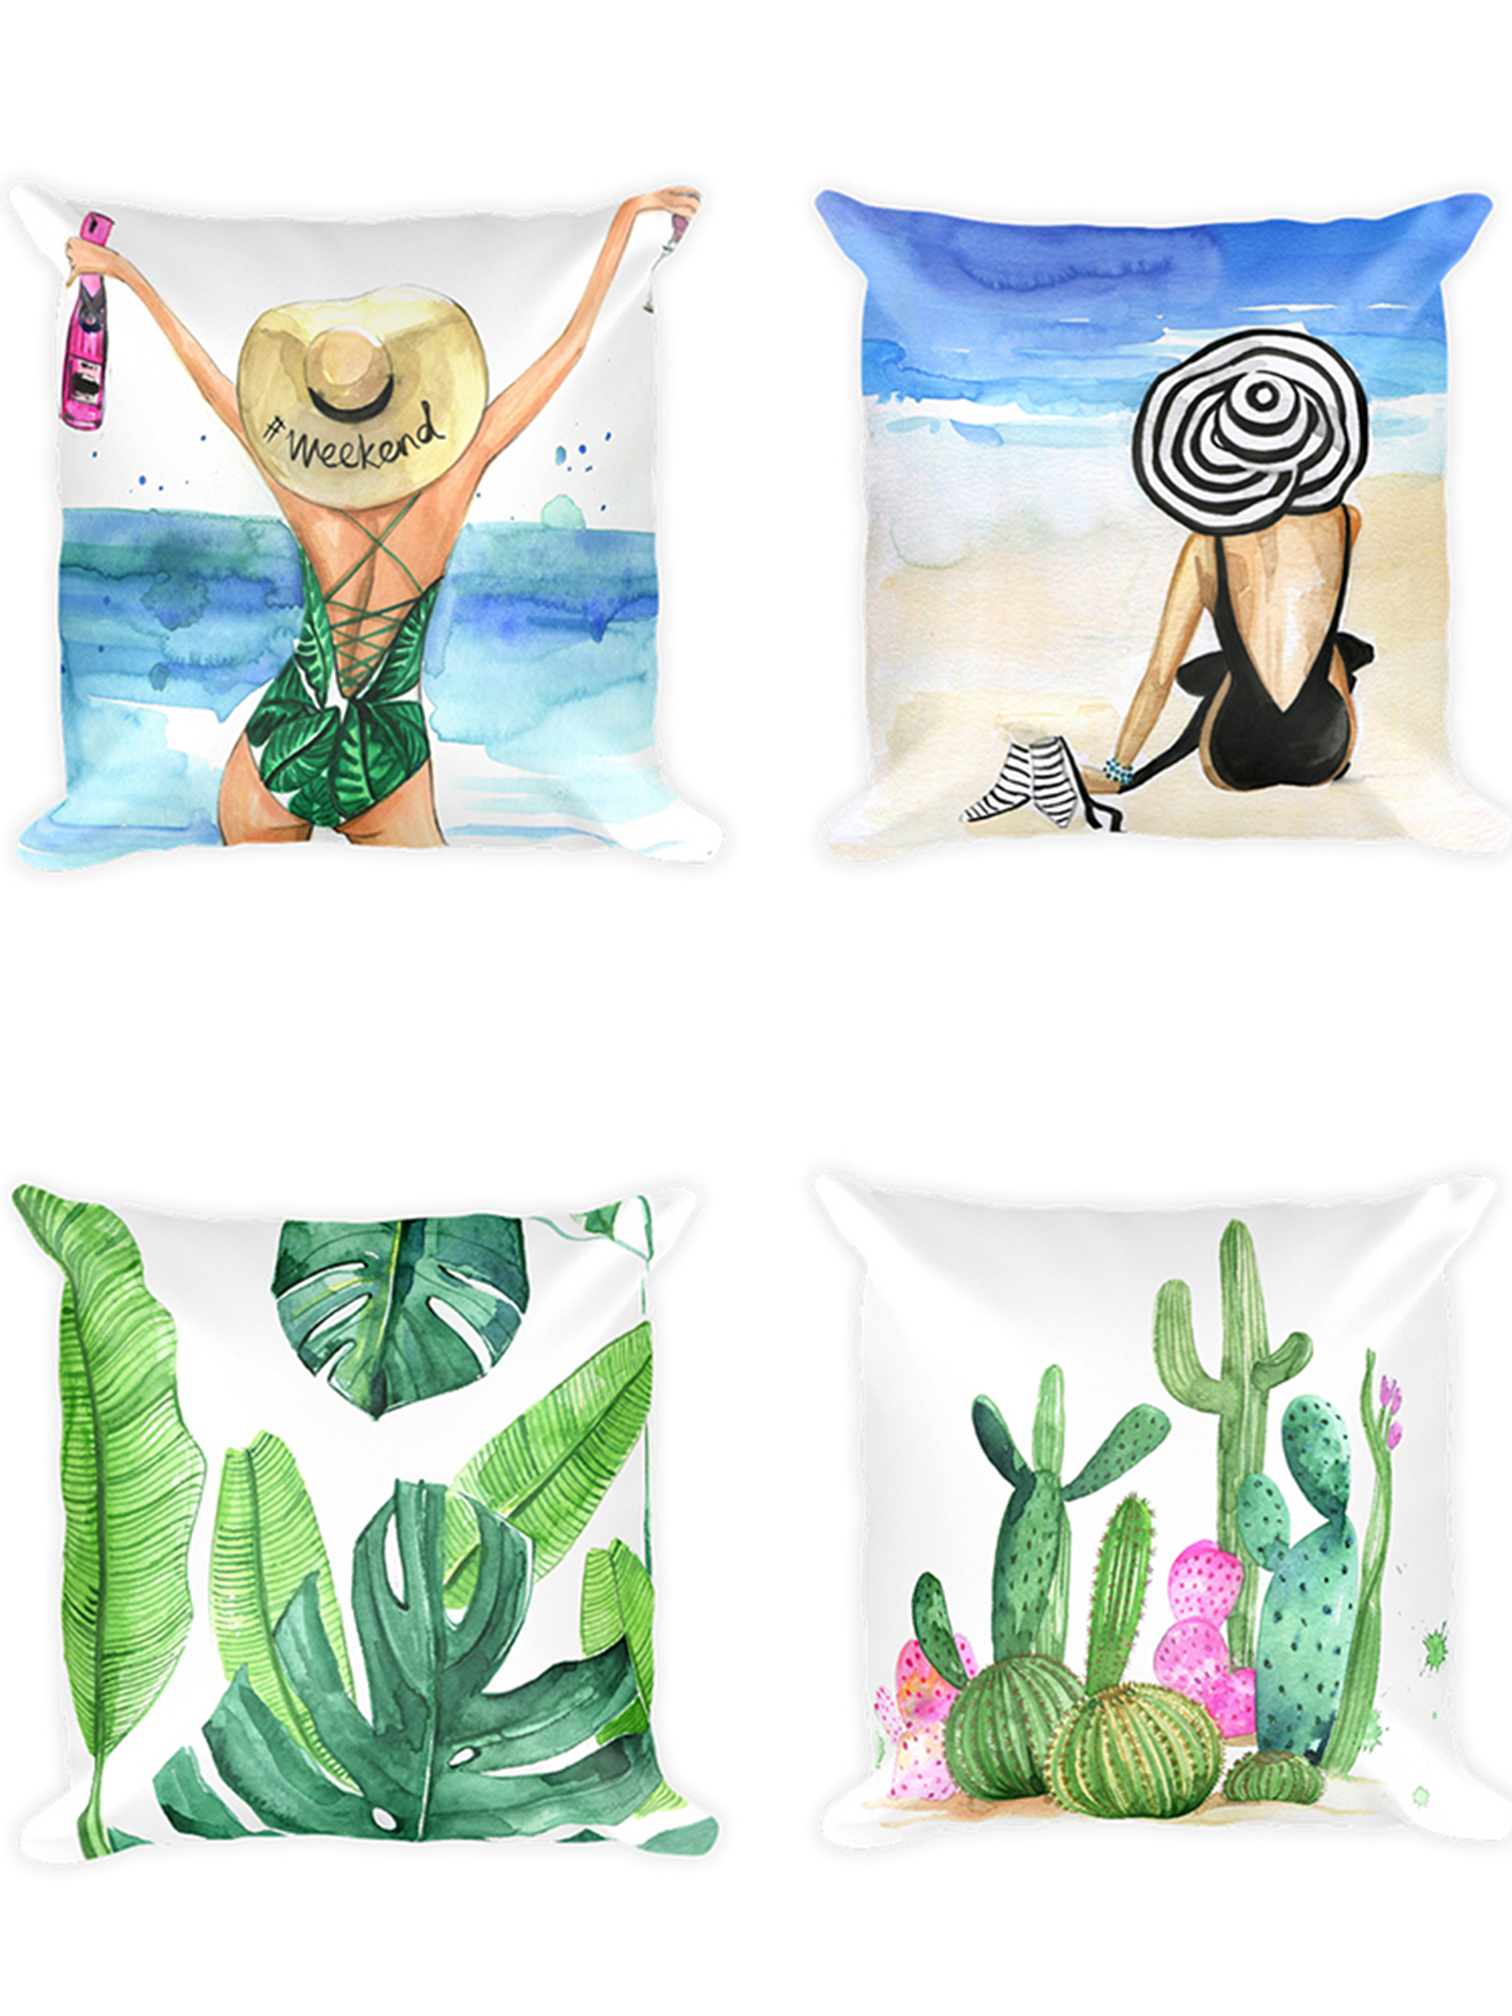 Fashion chic illustration pillows design for art licenisng by rongrong devoe.jpg